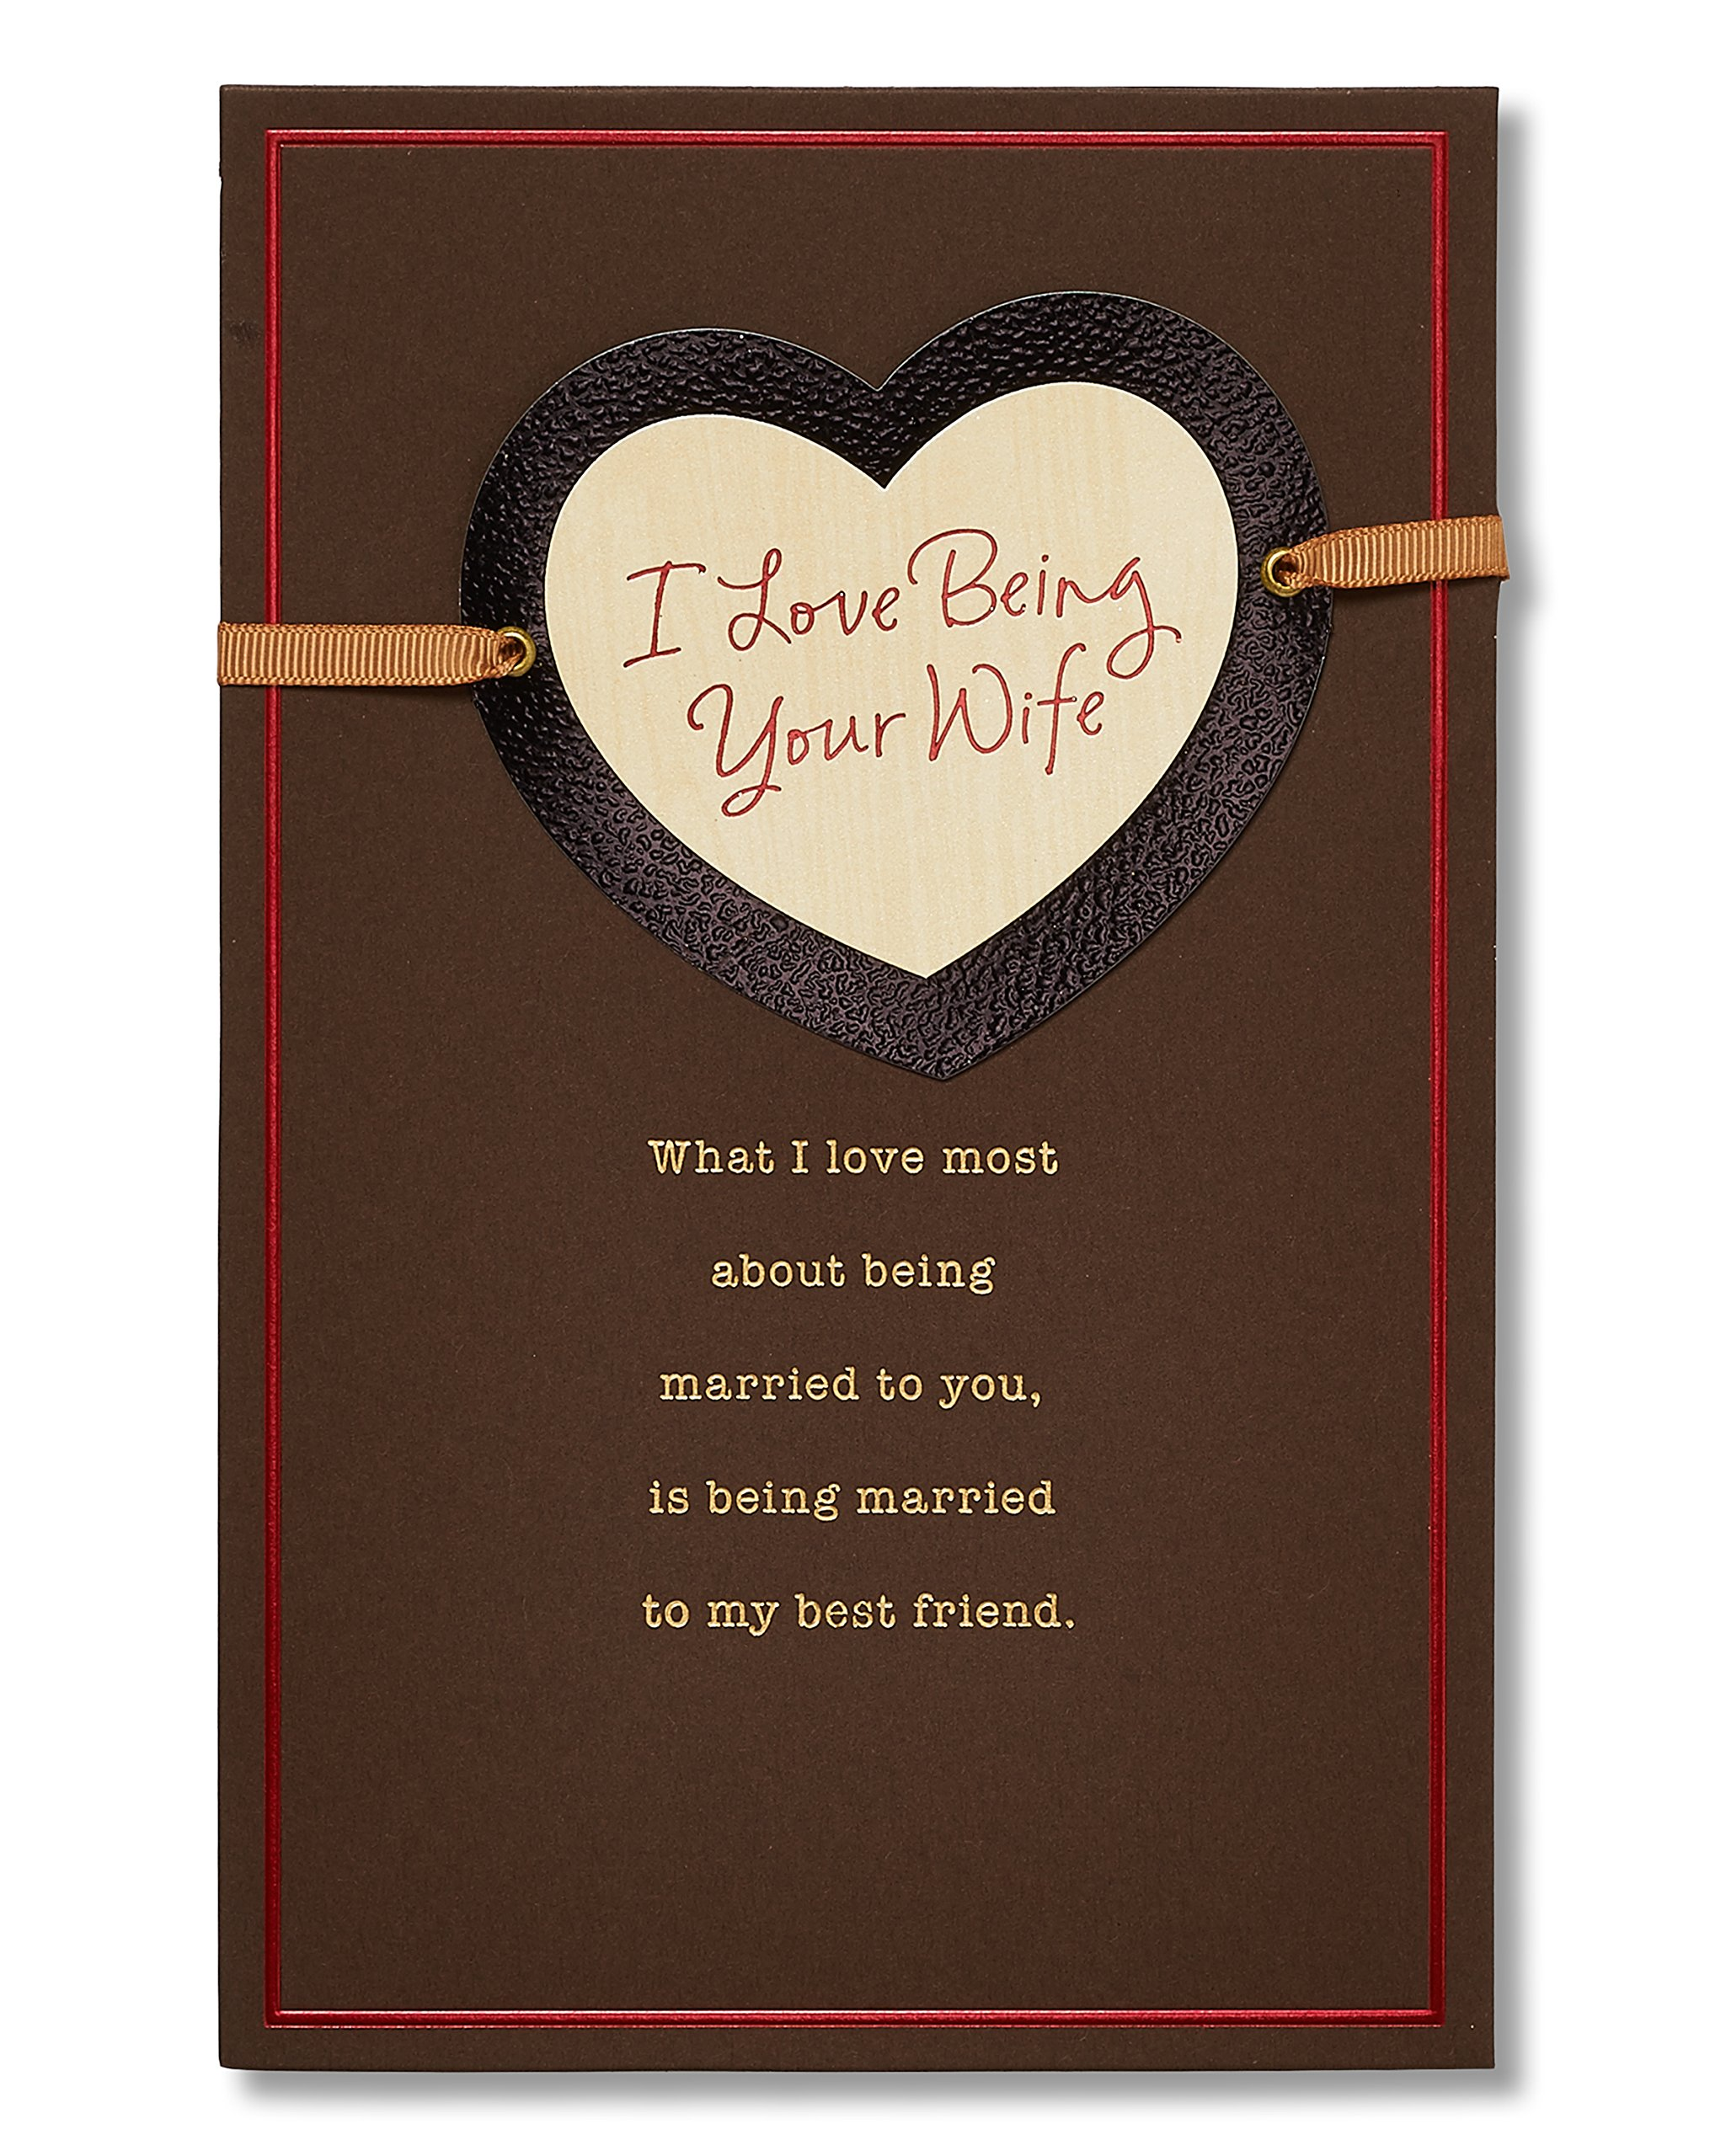 Buy American Greetings Love Being Your Wife Sentimental Valentines